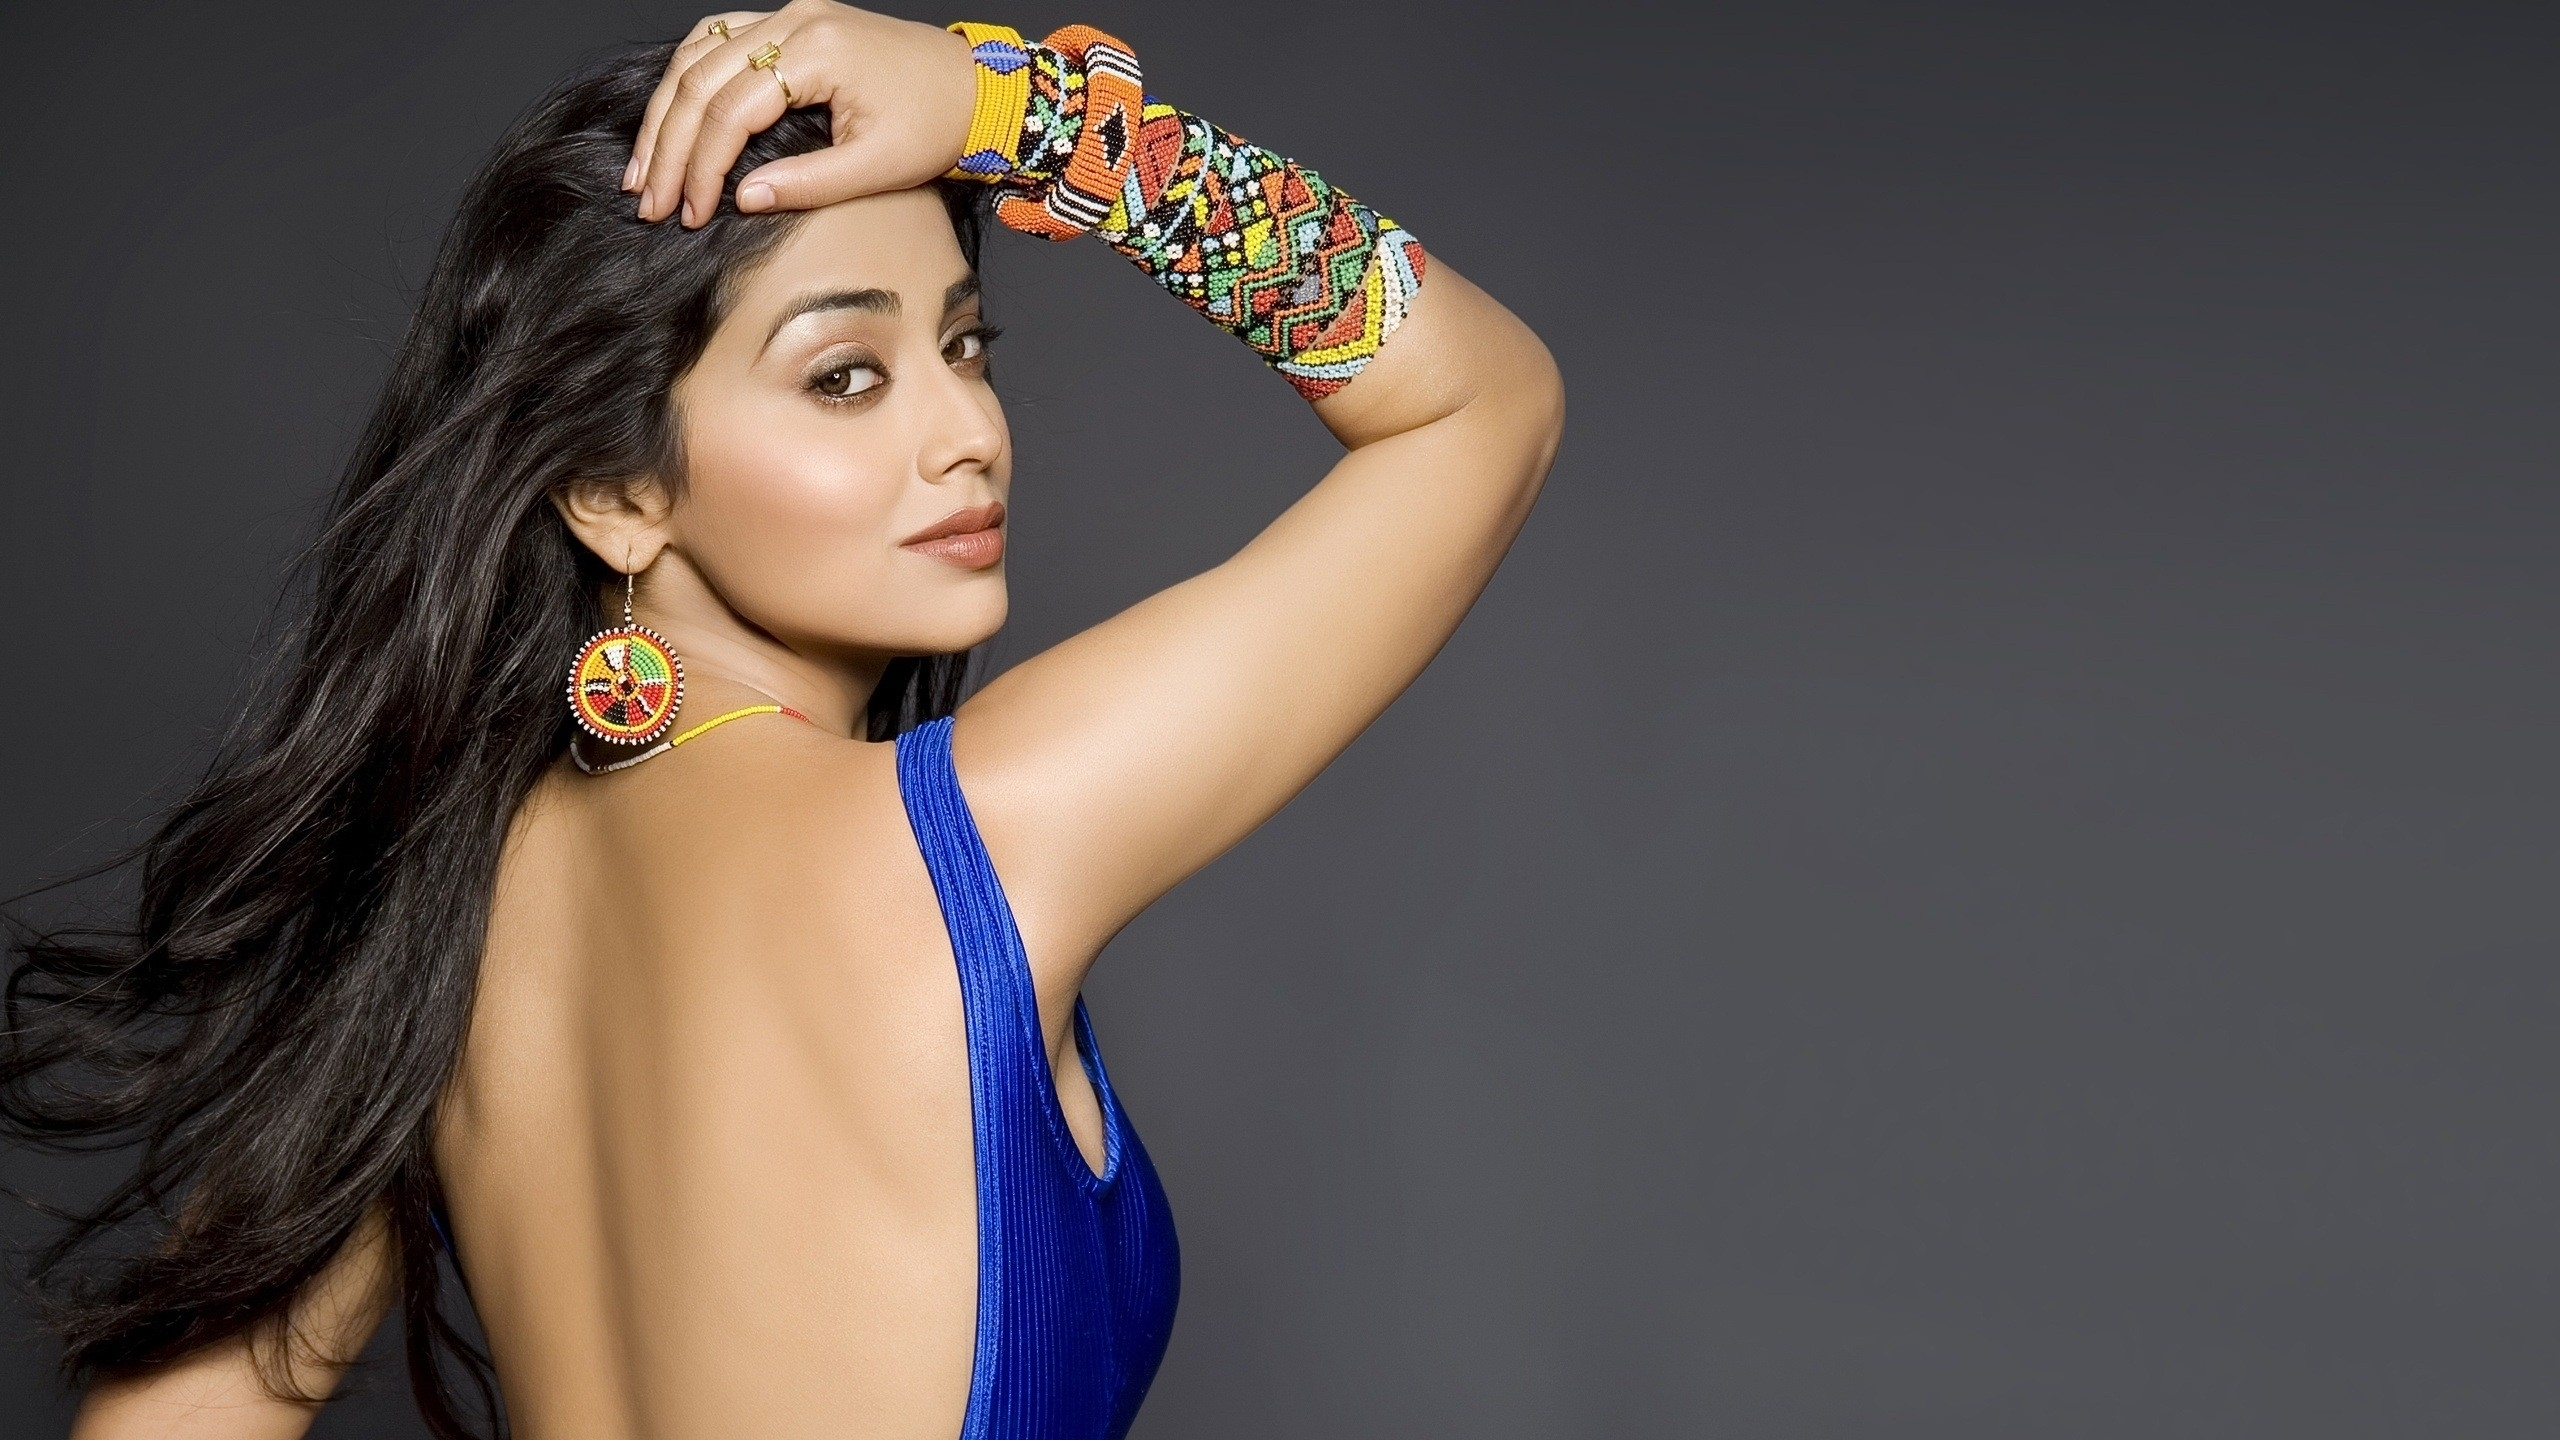 Shriya Saran Bollywood Actress New Pictures, Images High Quality - All Hd Wallpapers-6008